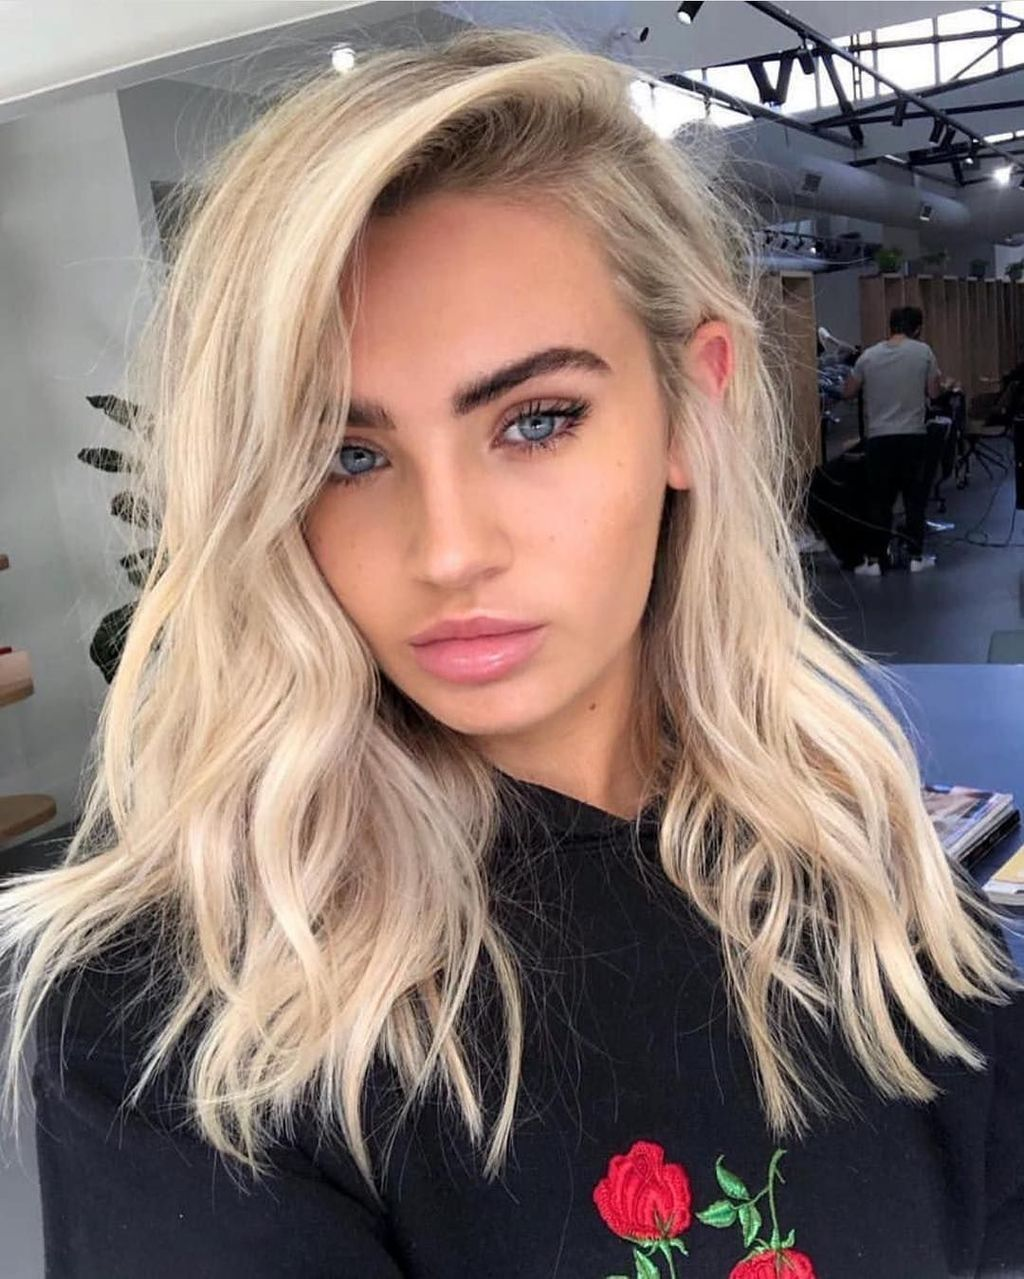 49 Classy Colors Ideas For Women Hairstyle To Try In 2019 #blondehair